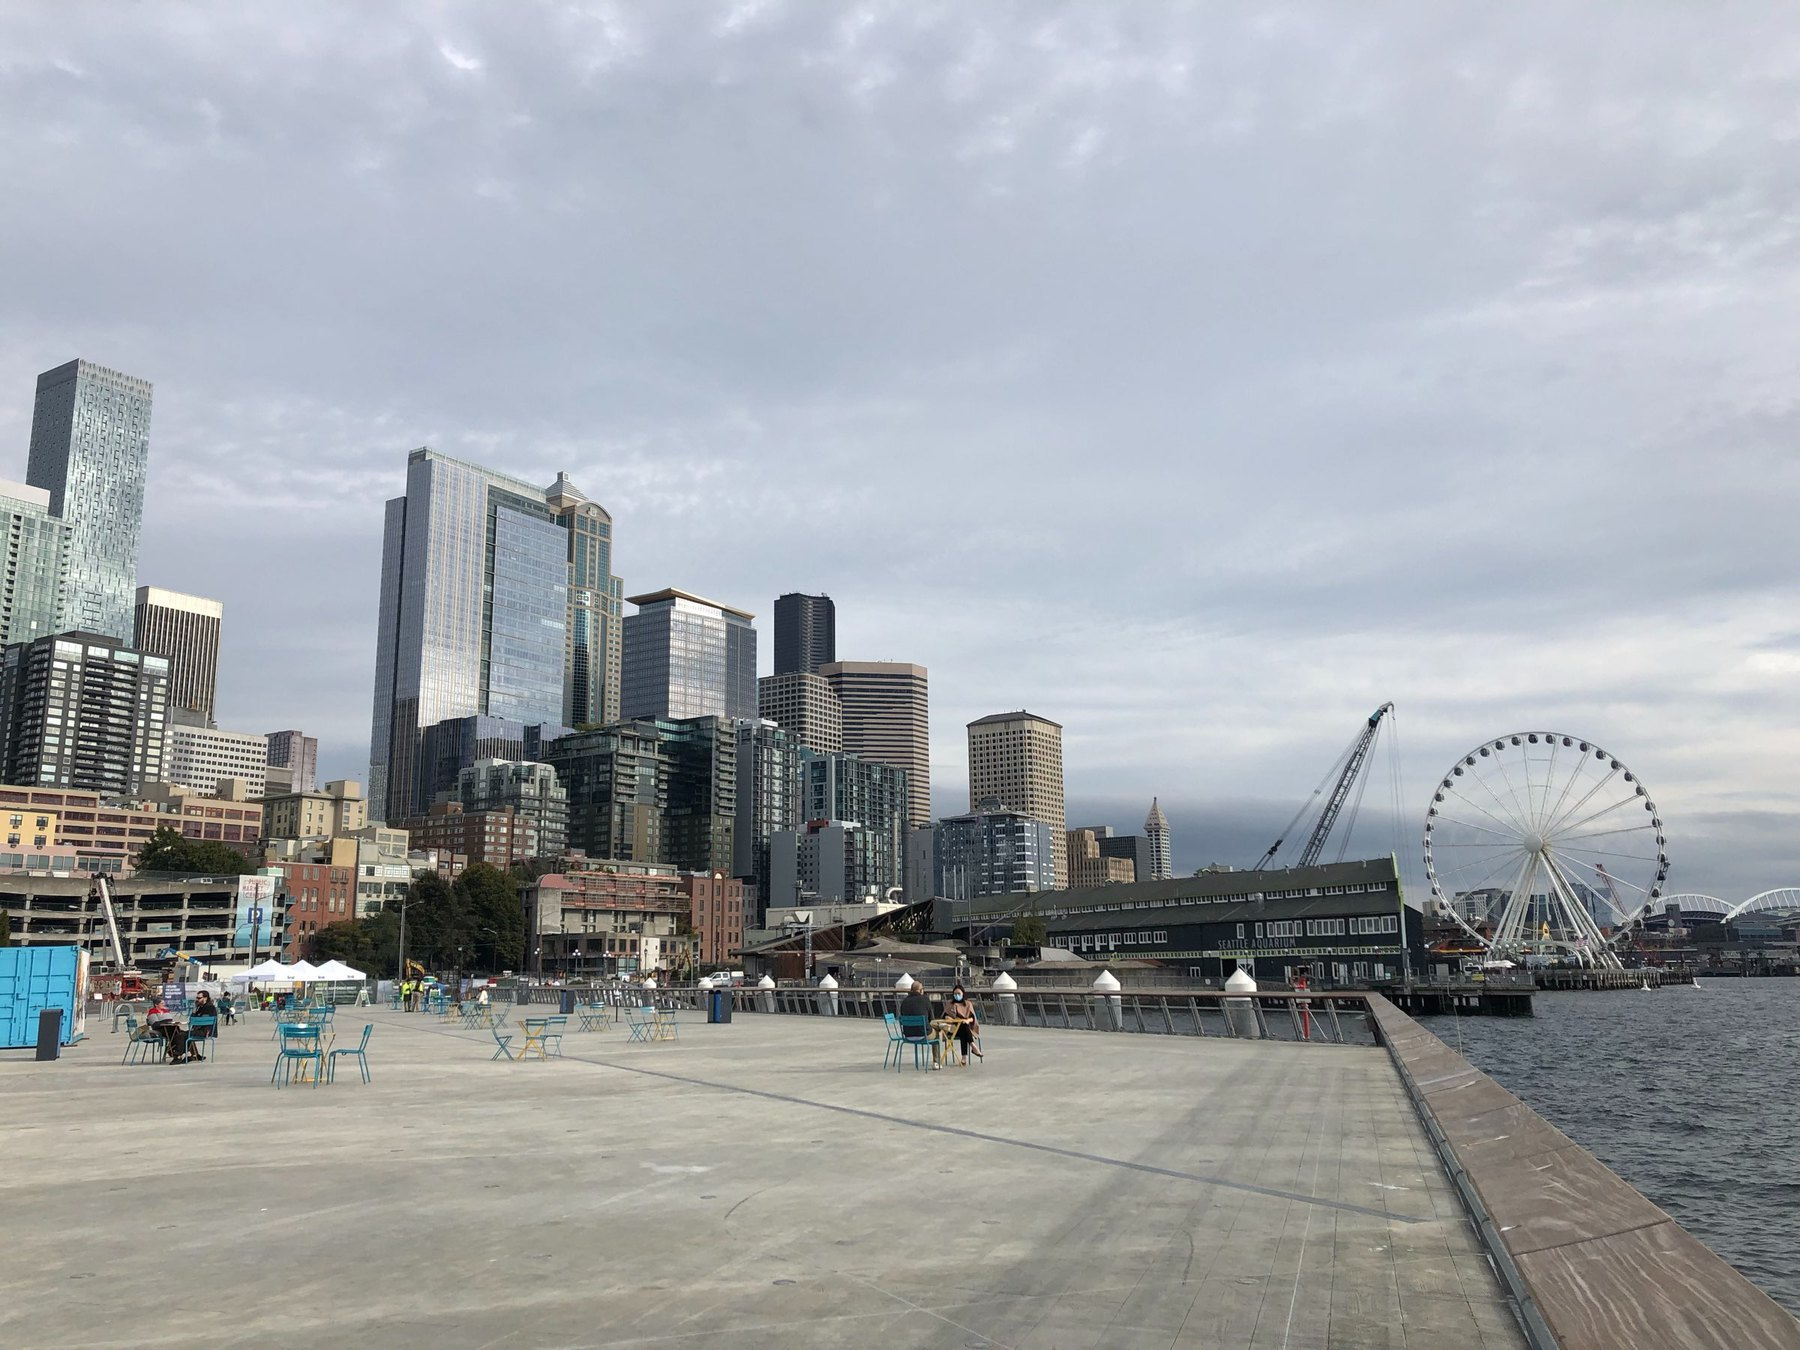 The Seattle skyline is blue and gray against a gray sky. A large concrete pier, very clean and flat is dotted with tables. To the far right, the water of Elliott bay is choppy. The Great Wheel is a round feature in the distance.